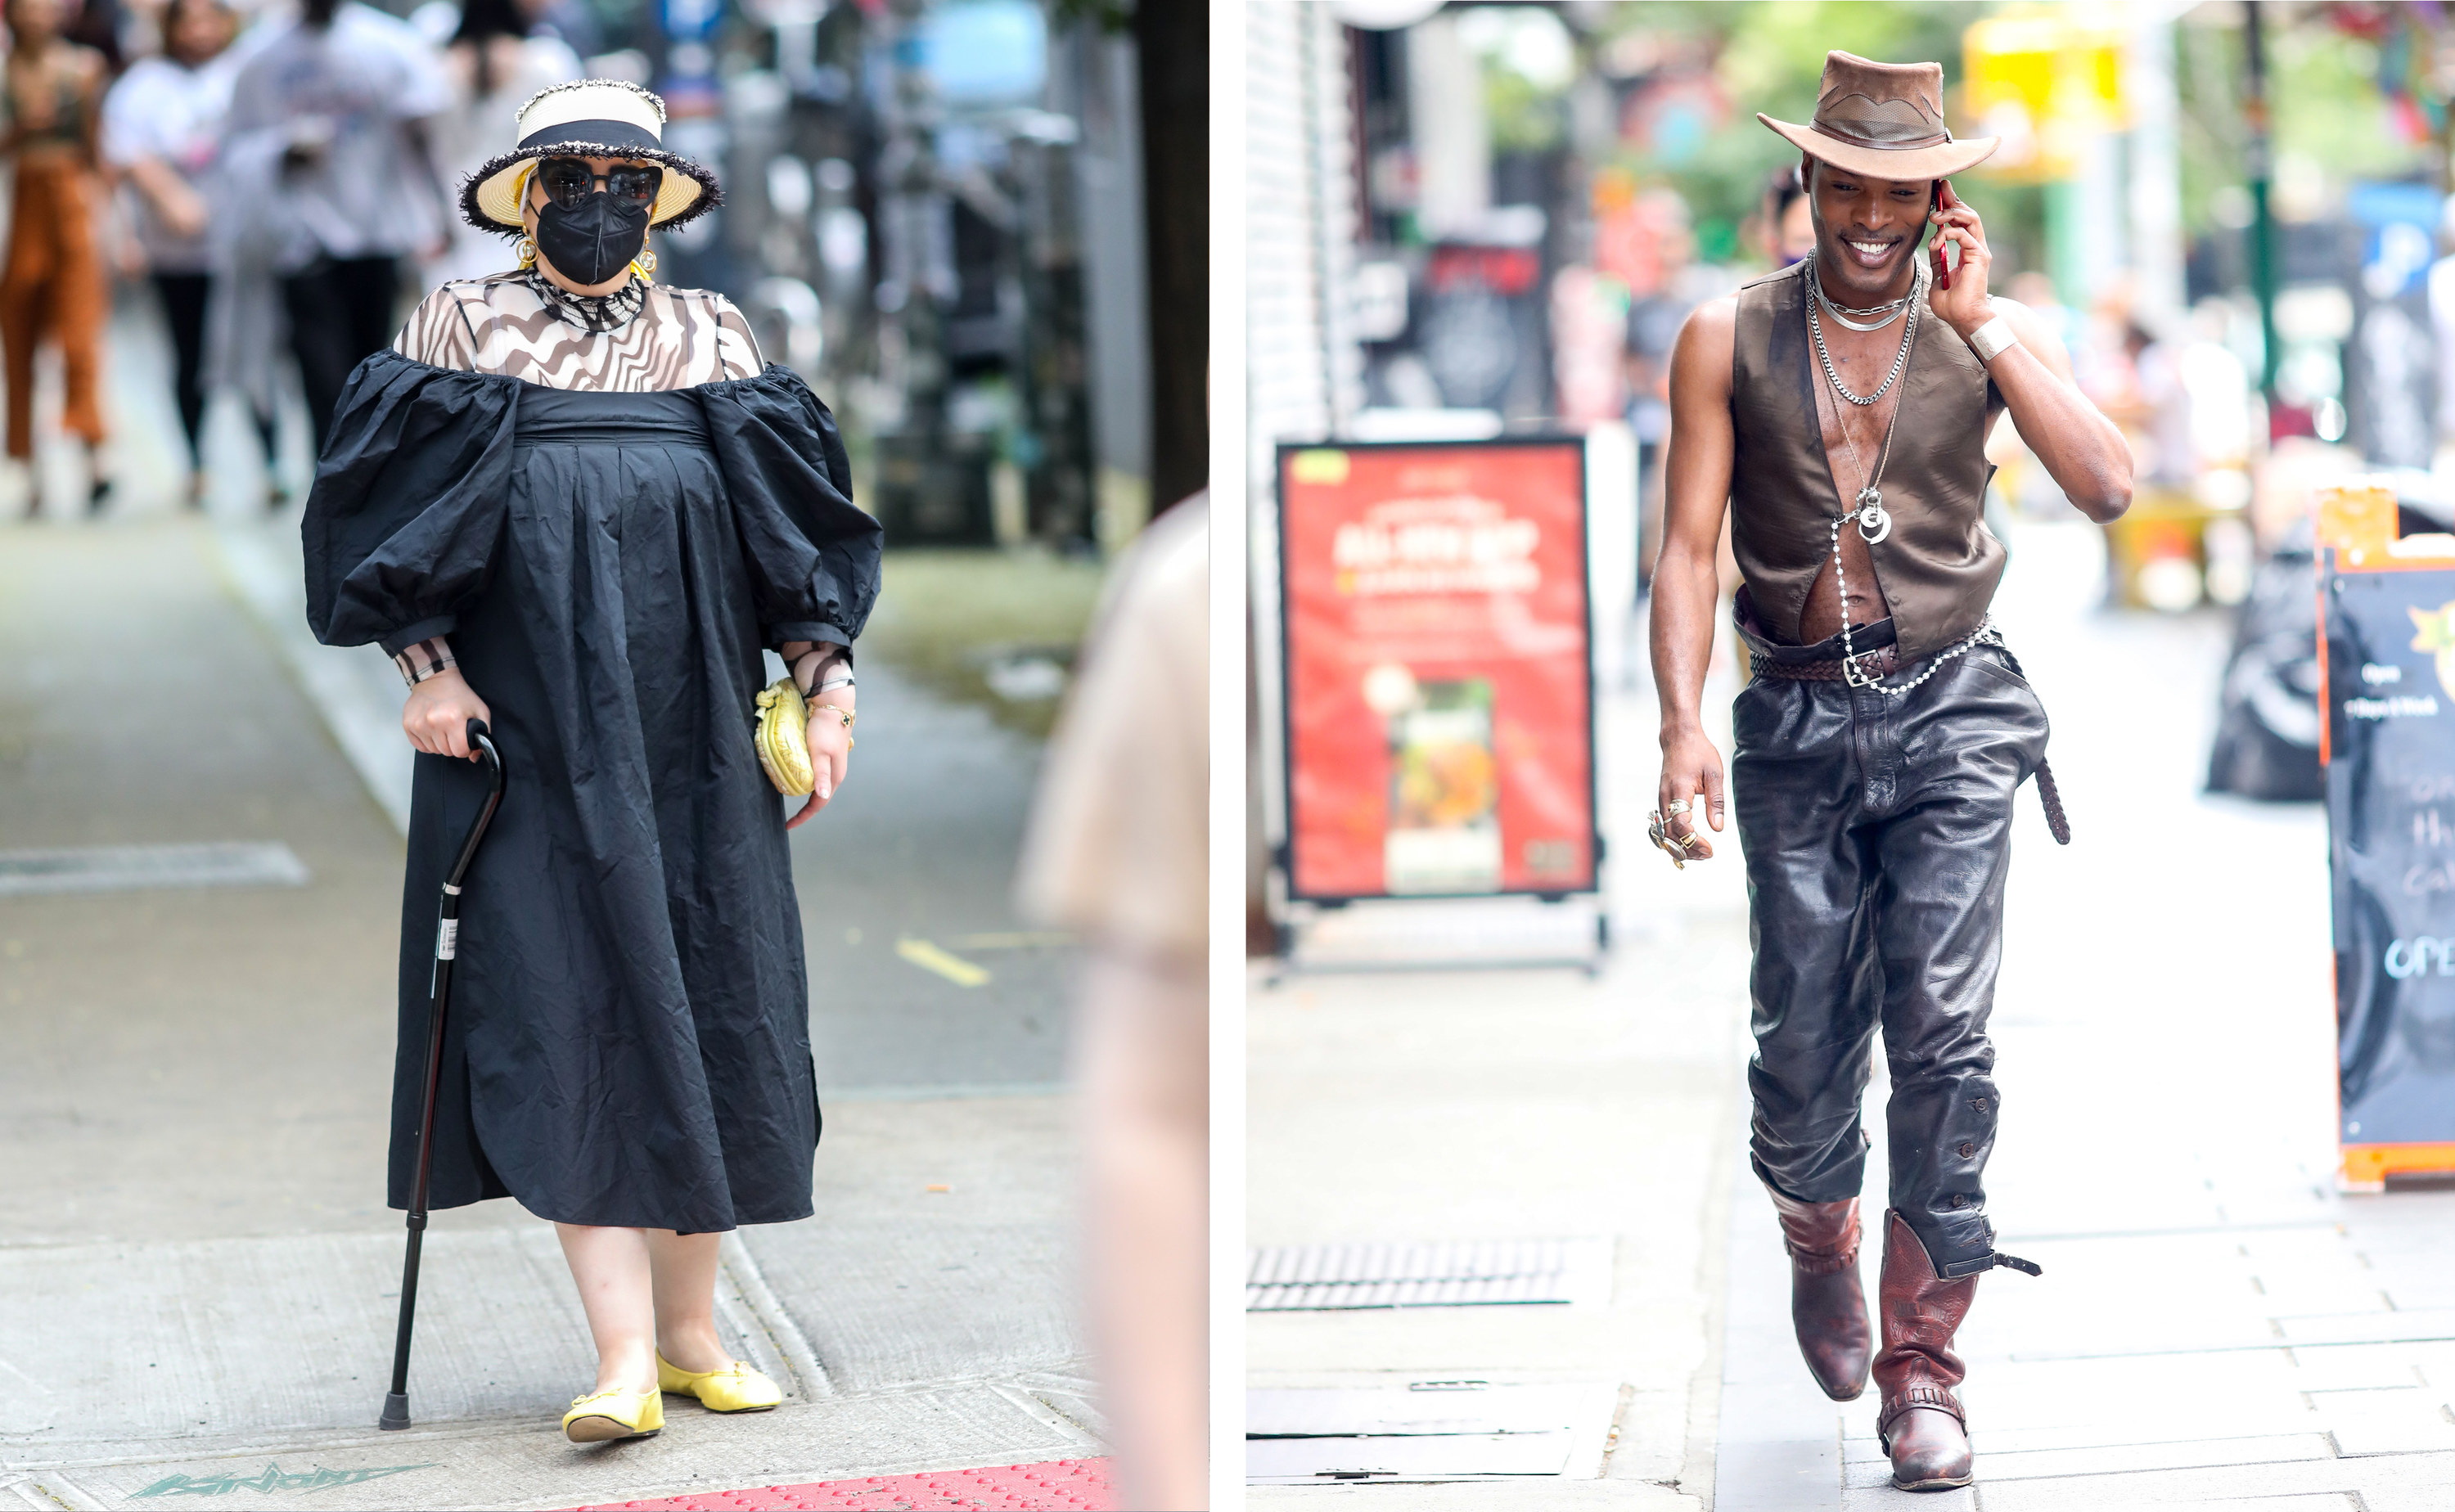 Left, an older woman in a mask and hat leans on a cane, right, a man dressed in cowboy gear talks on the phone as he walks down the street